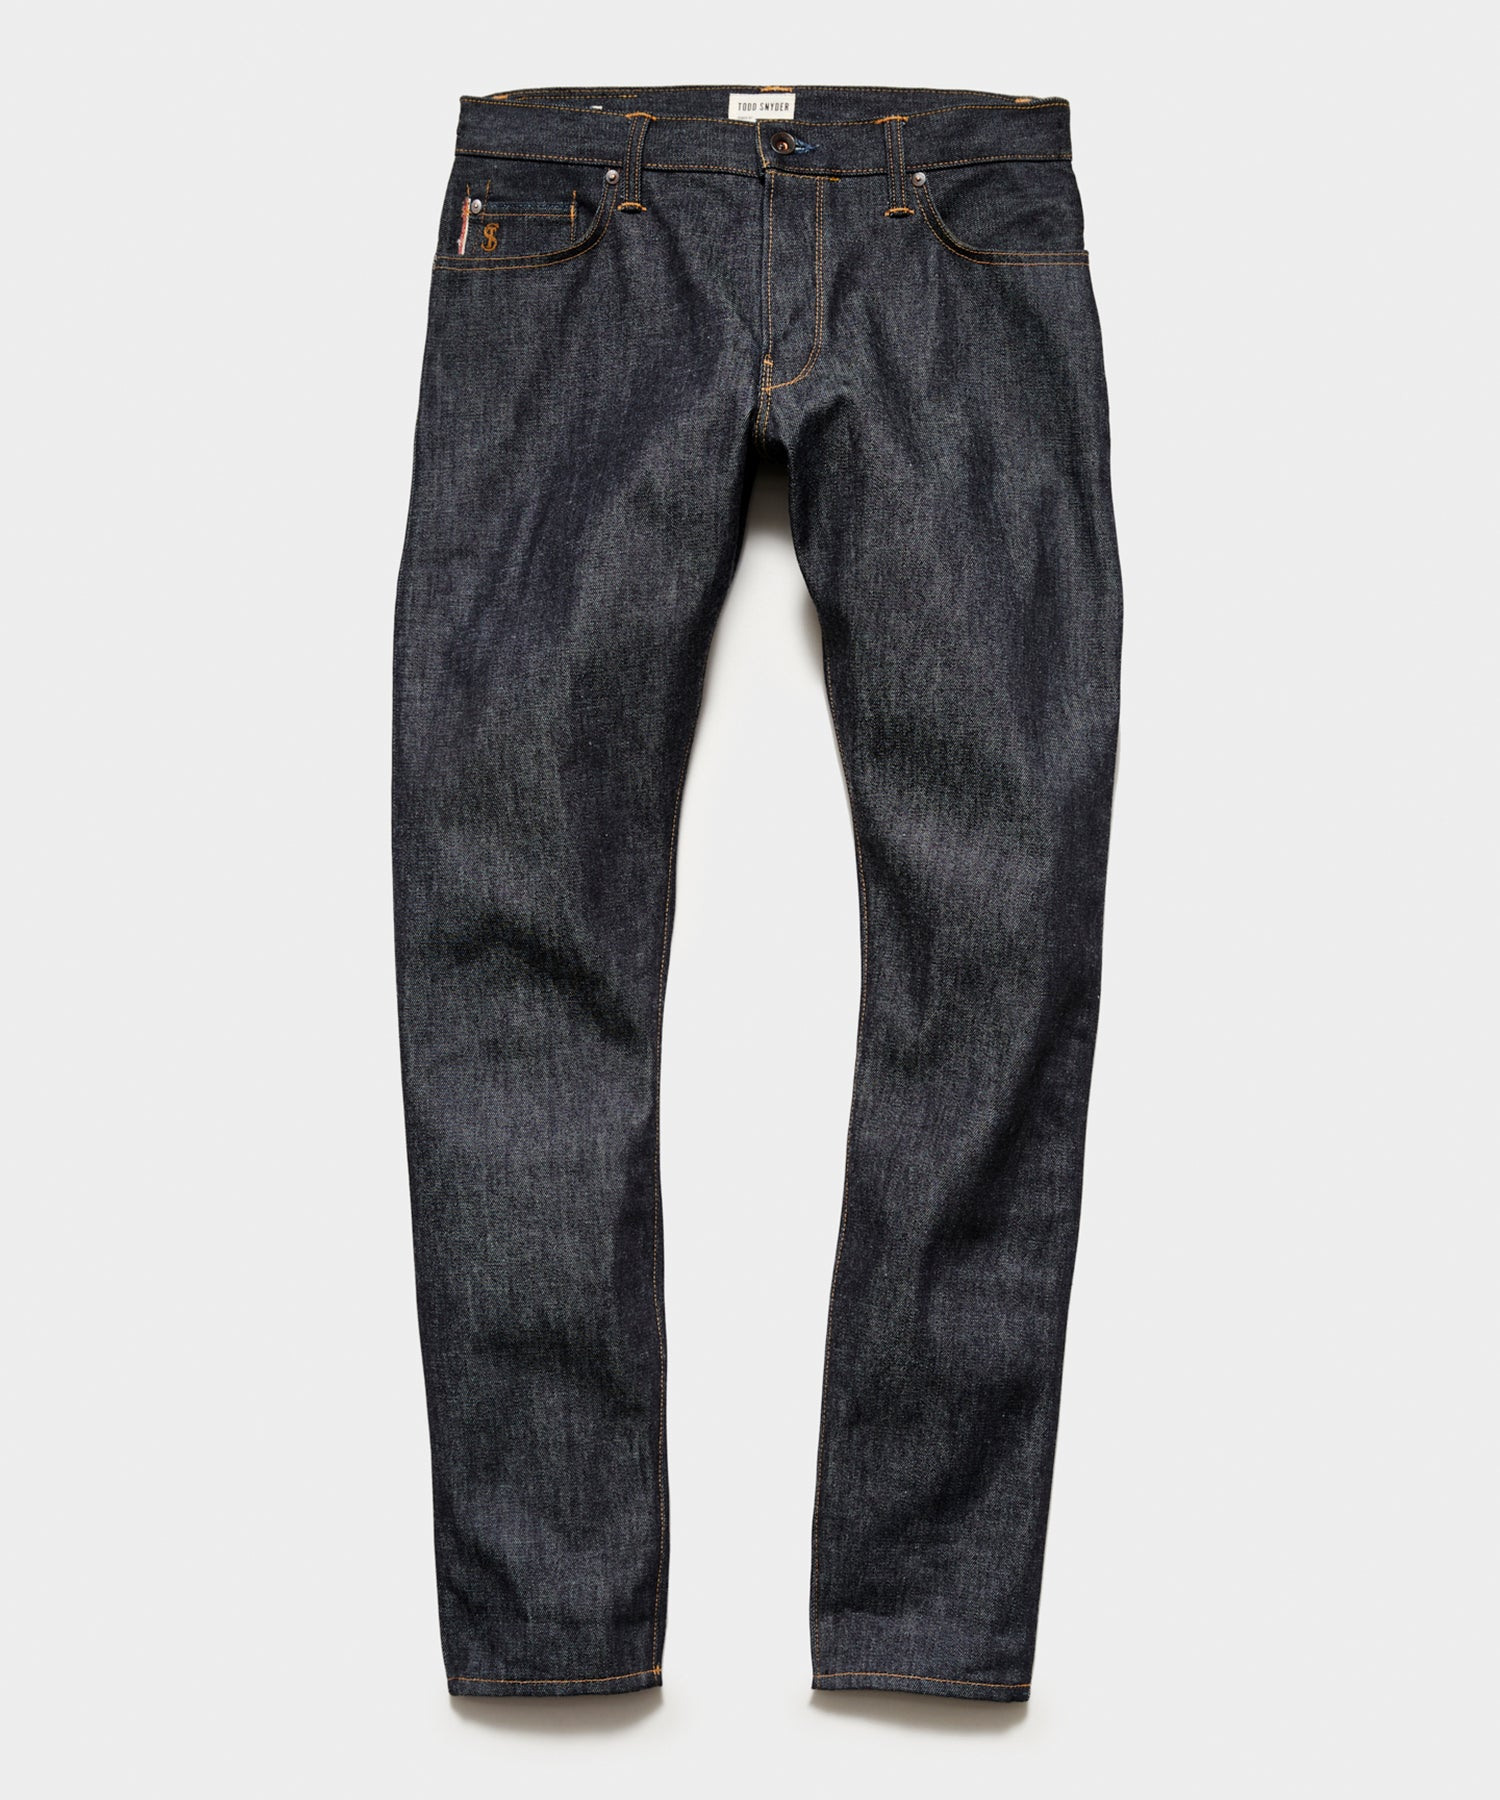 Todd Snyder Raw Selvedge Jeans